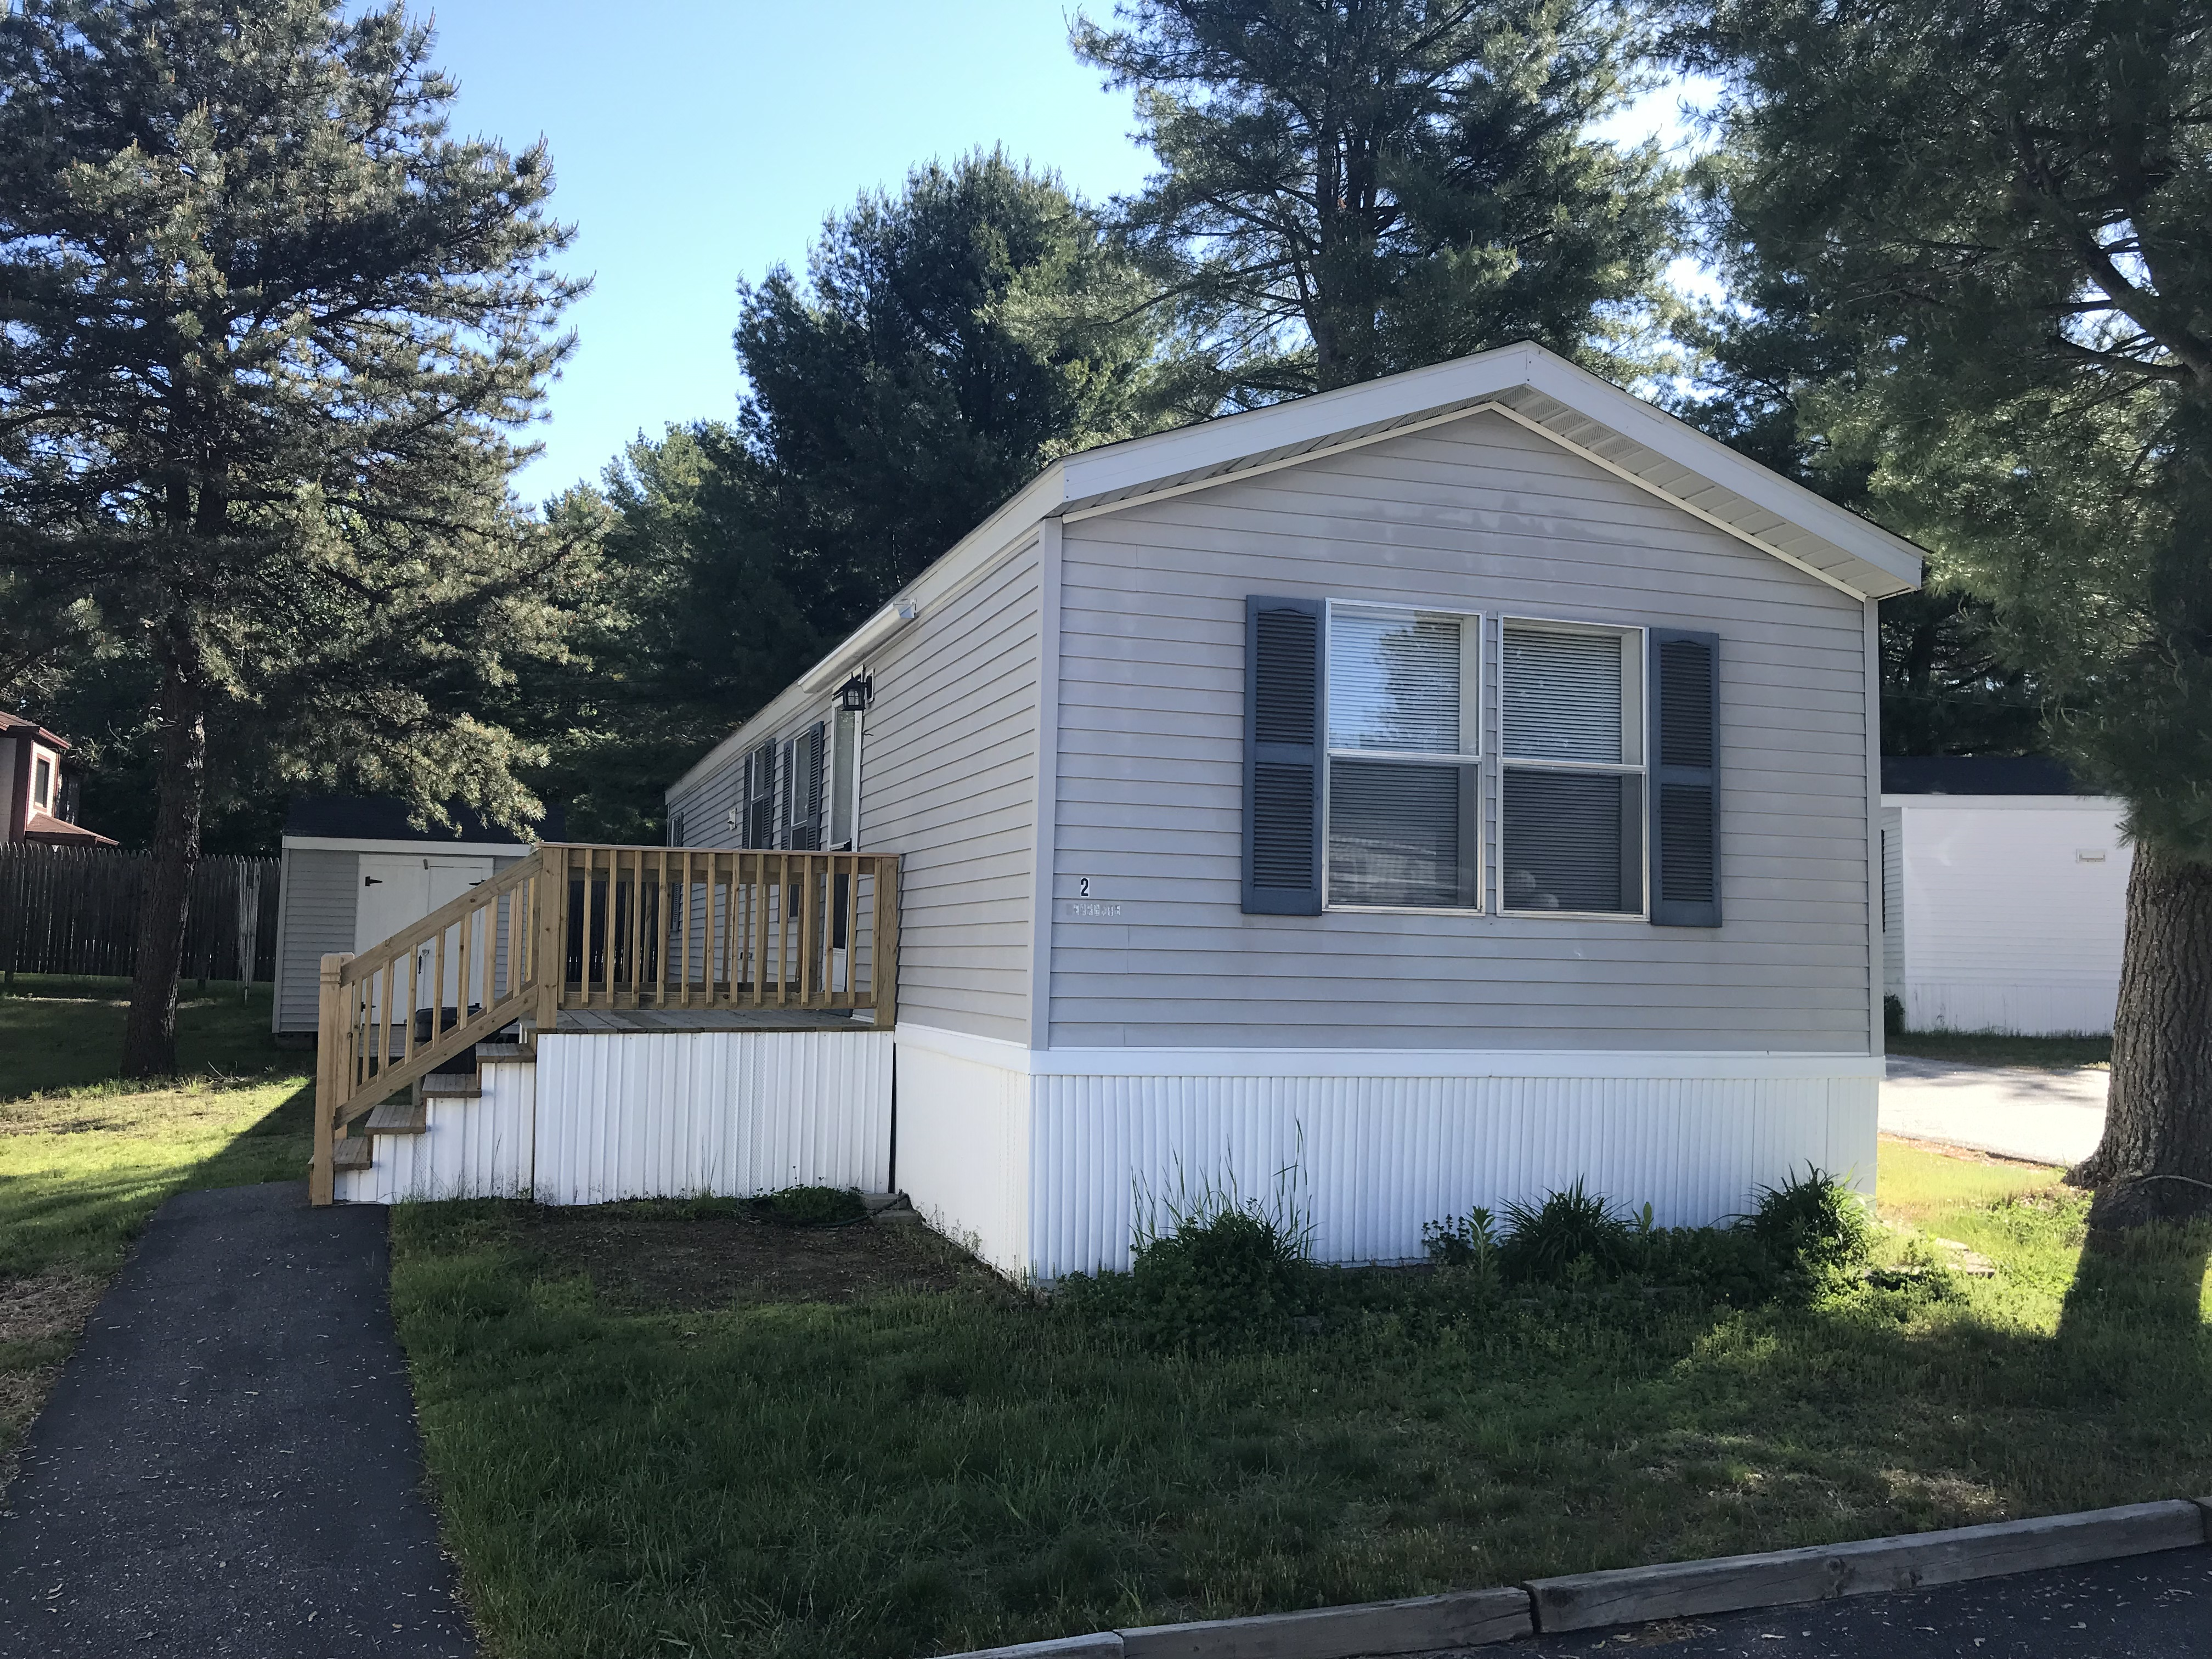 Maine Mobile Home For Sale at 2 Mayflower Dr Old Orchard Village